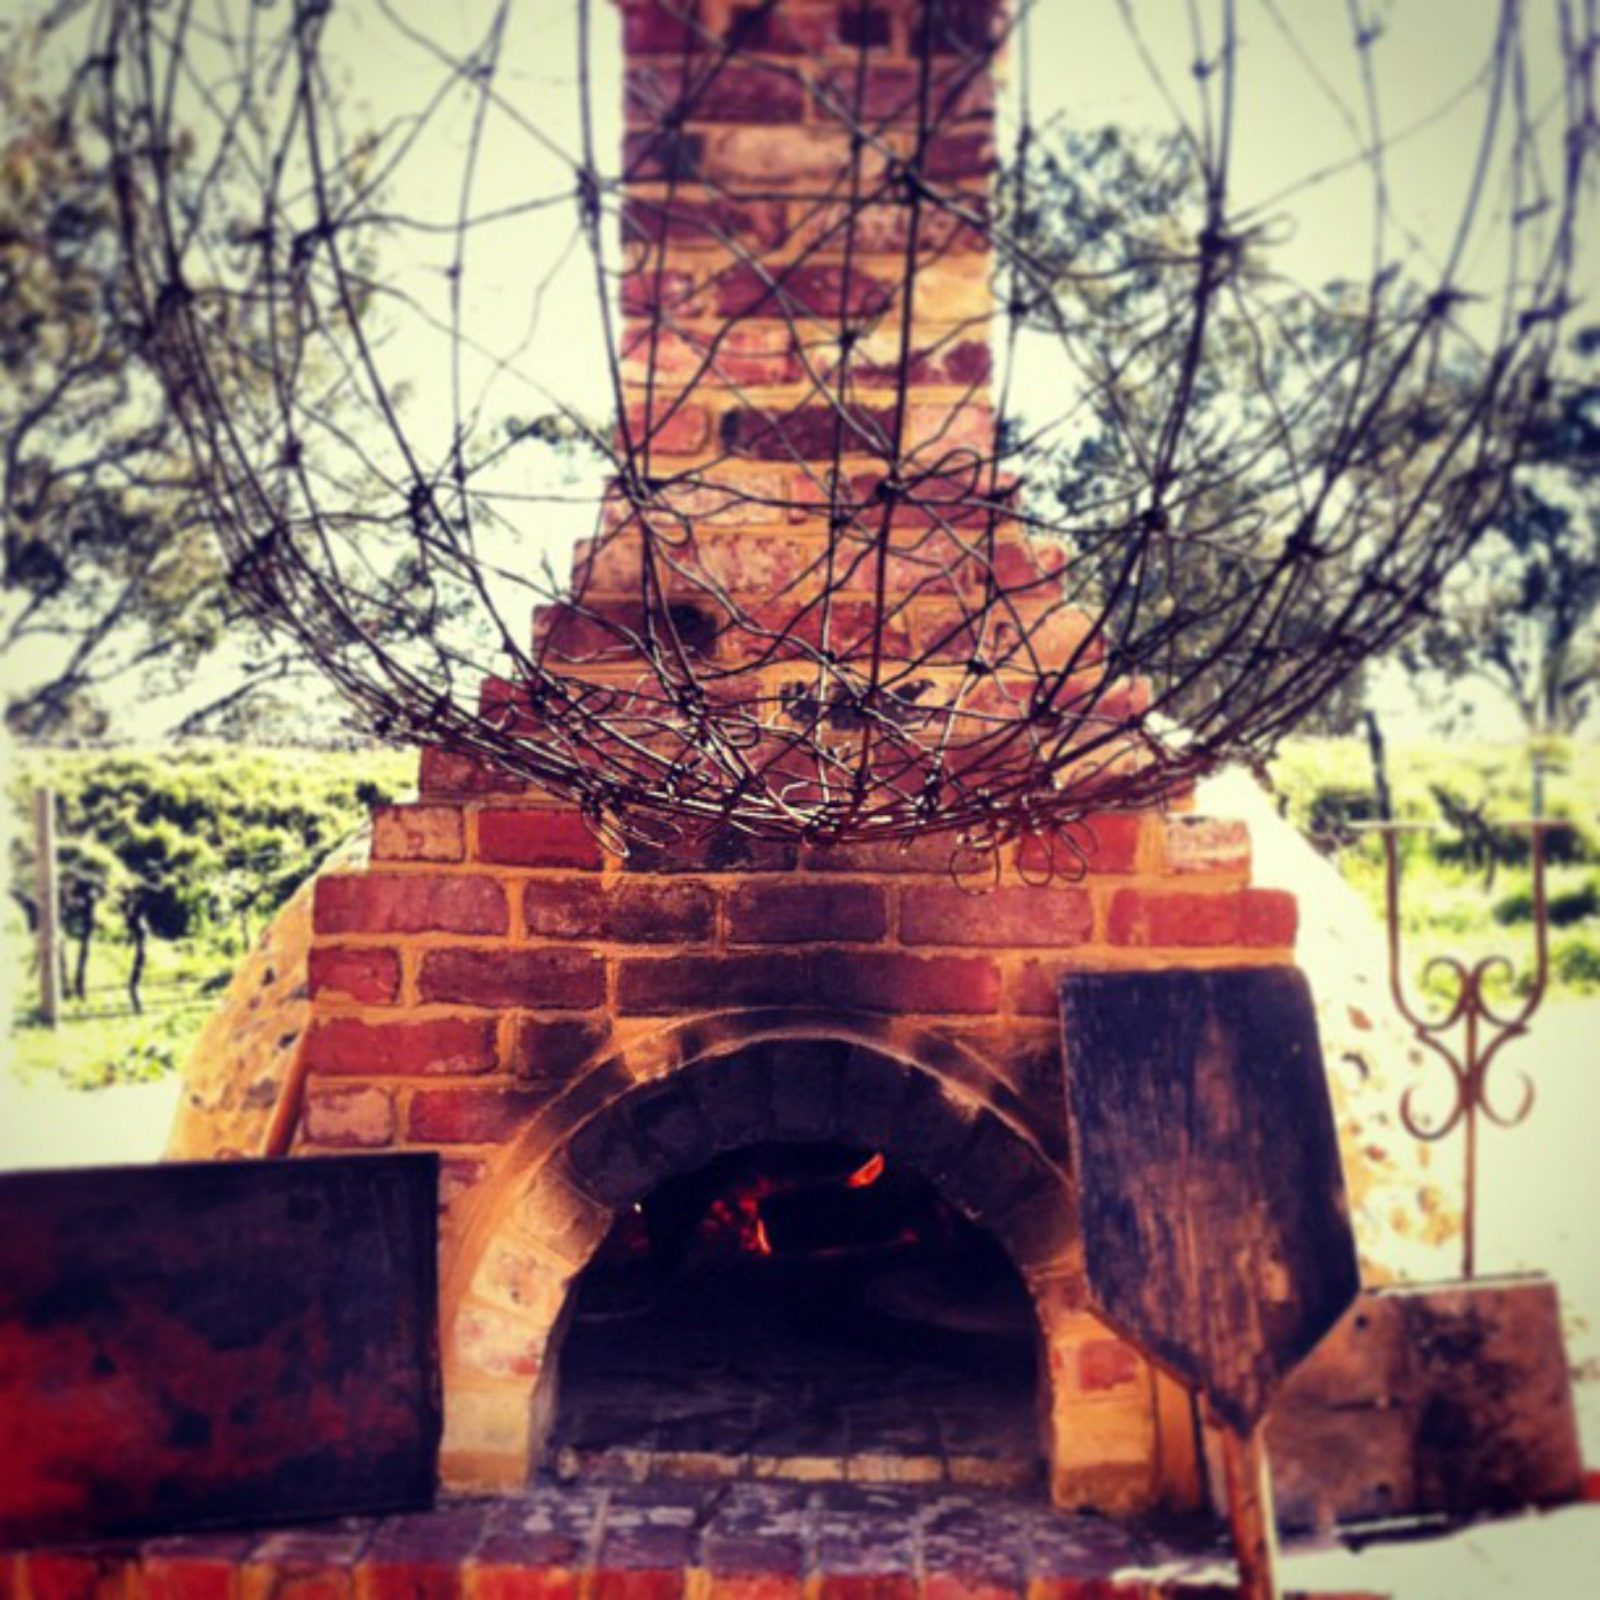 The Wood Oven